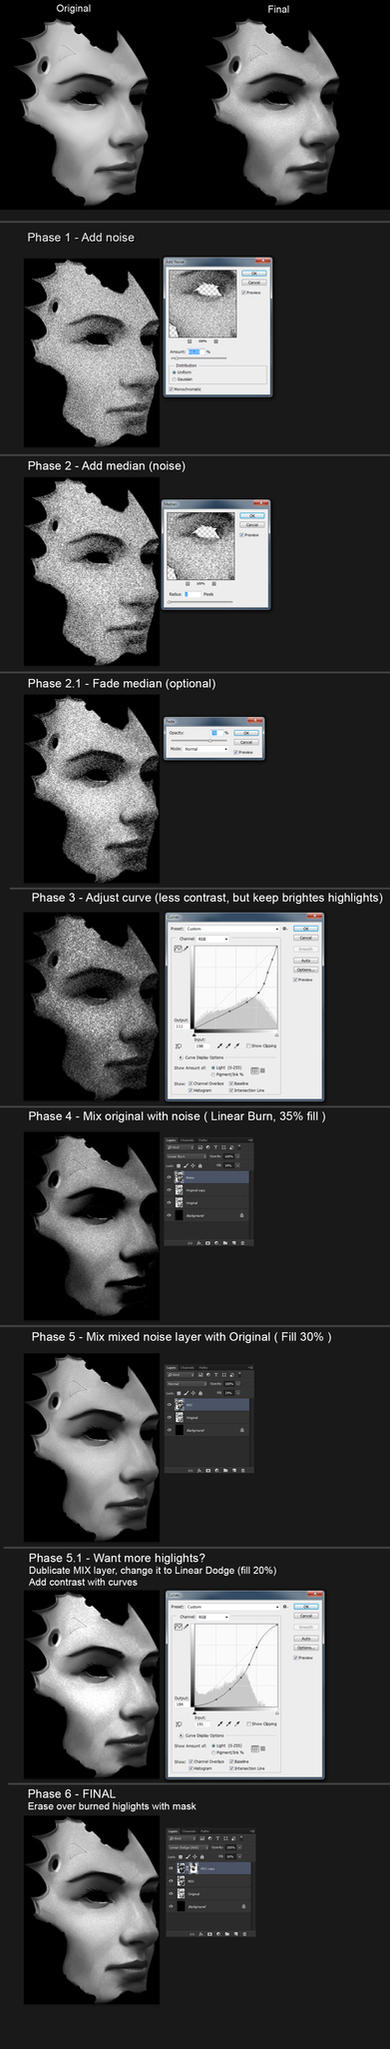 Face Skin Texture with Noise Filters - Tutorial by StMan